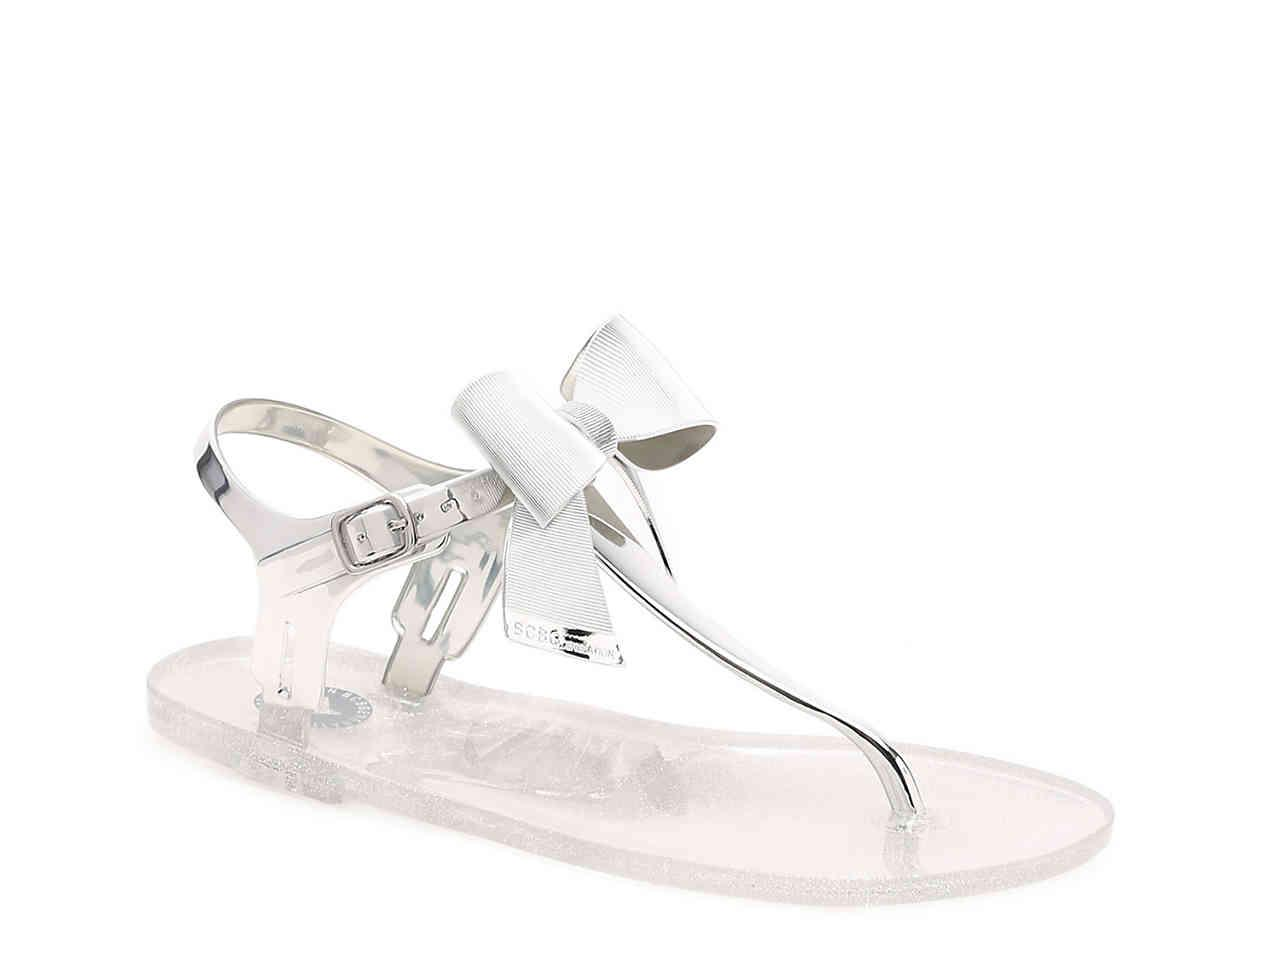 902341383db6 Lyst - BCBGeneration Beena Jelly Sandal in Metallic